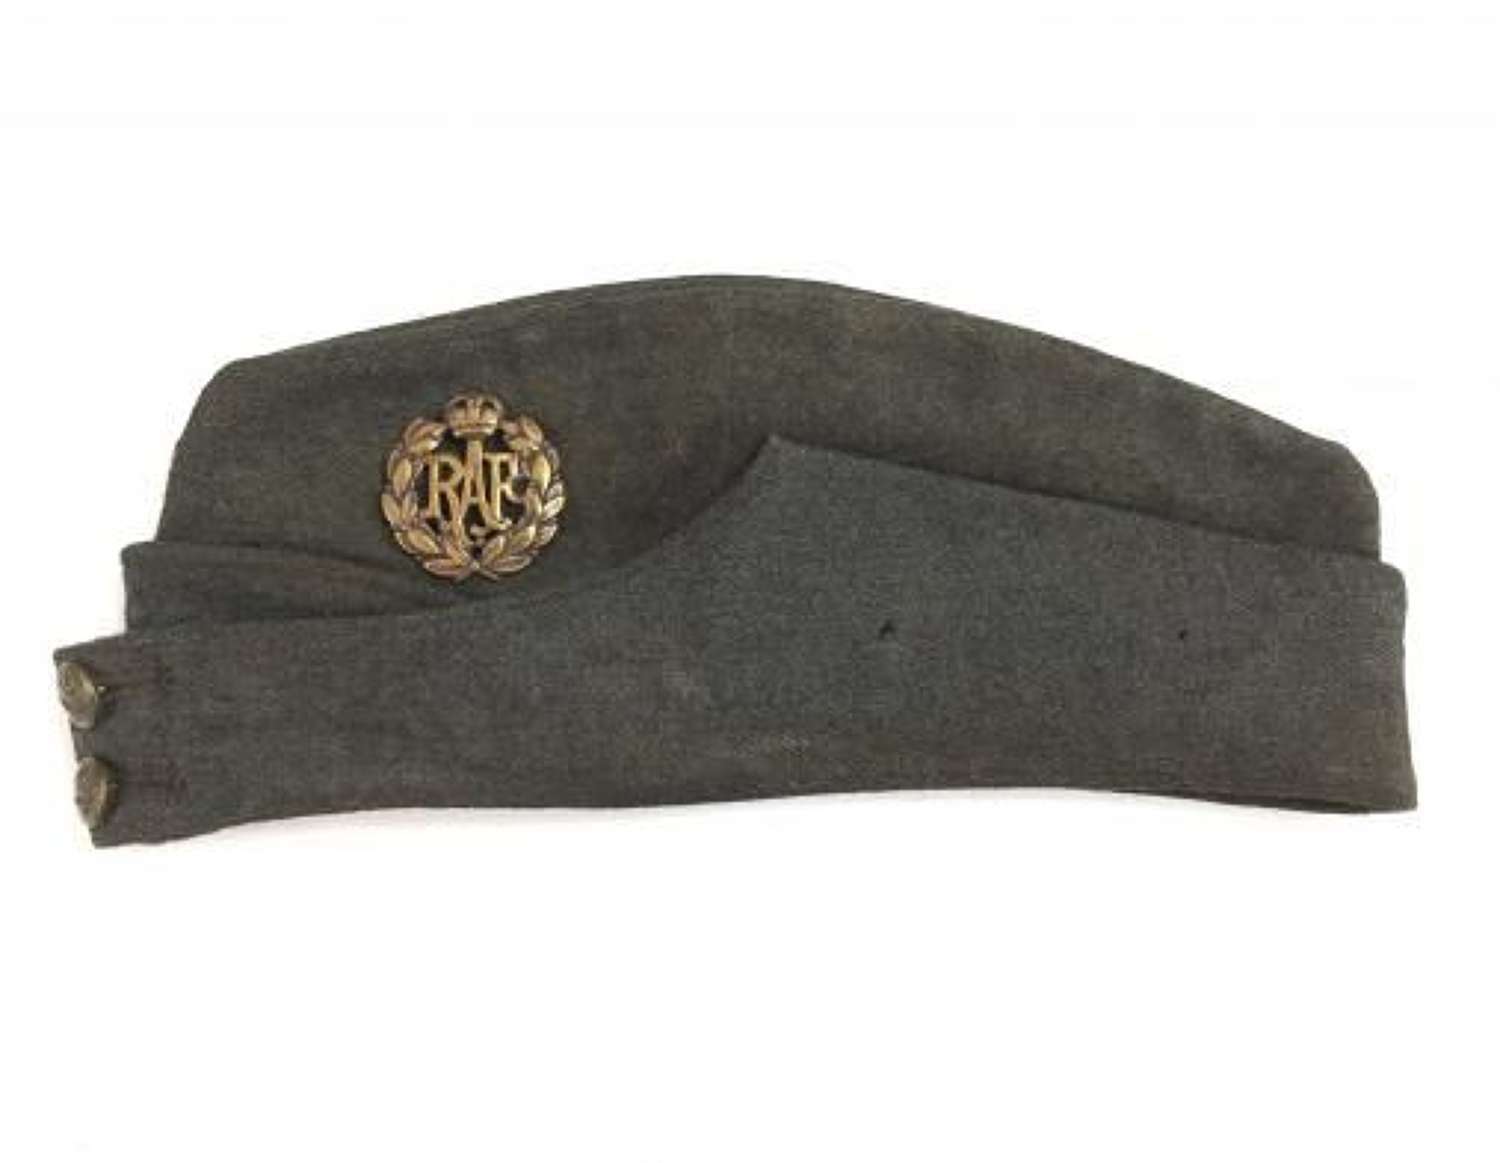 Original RAF Ordinary Airmans Forage Cap